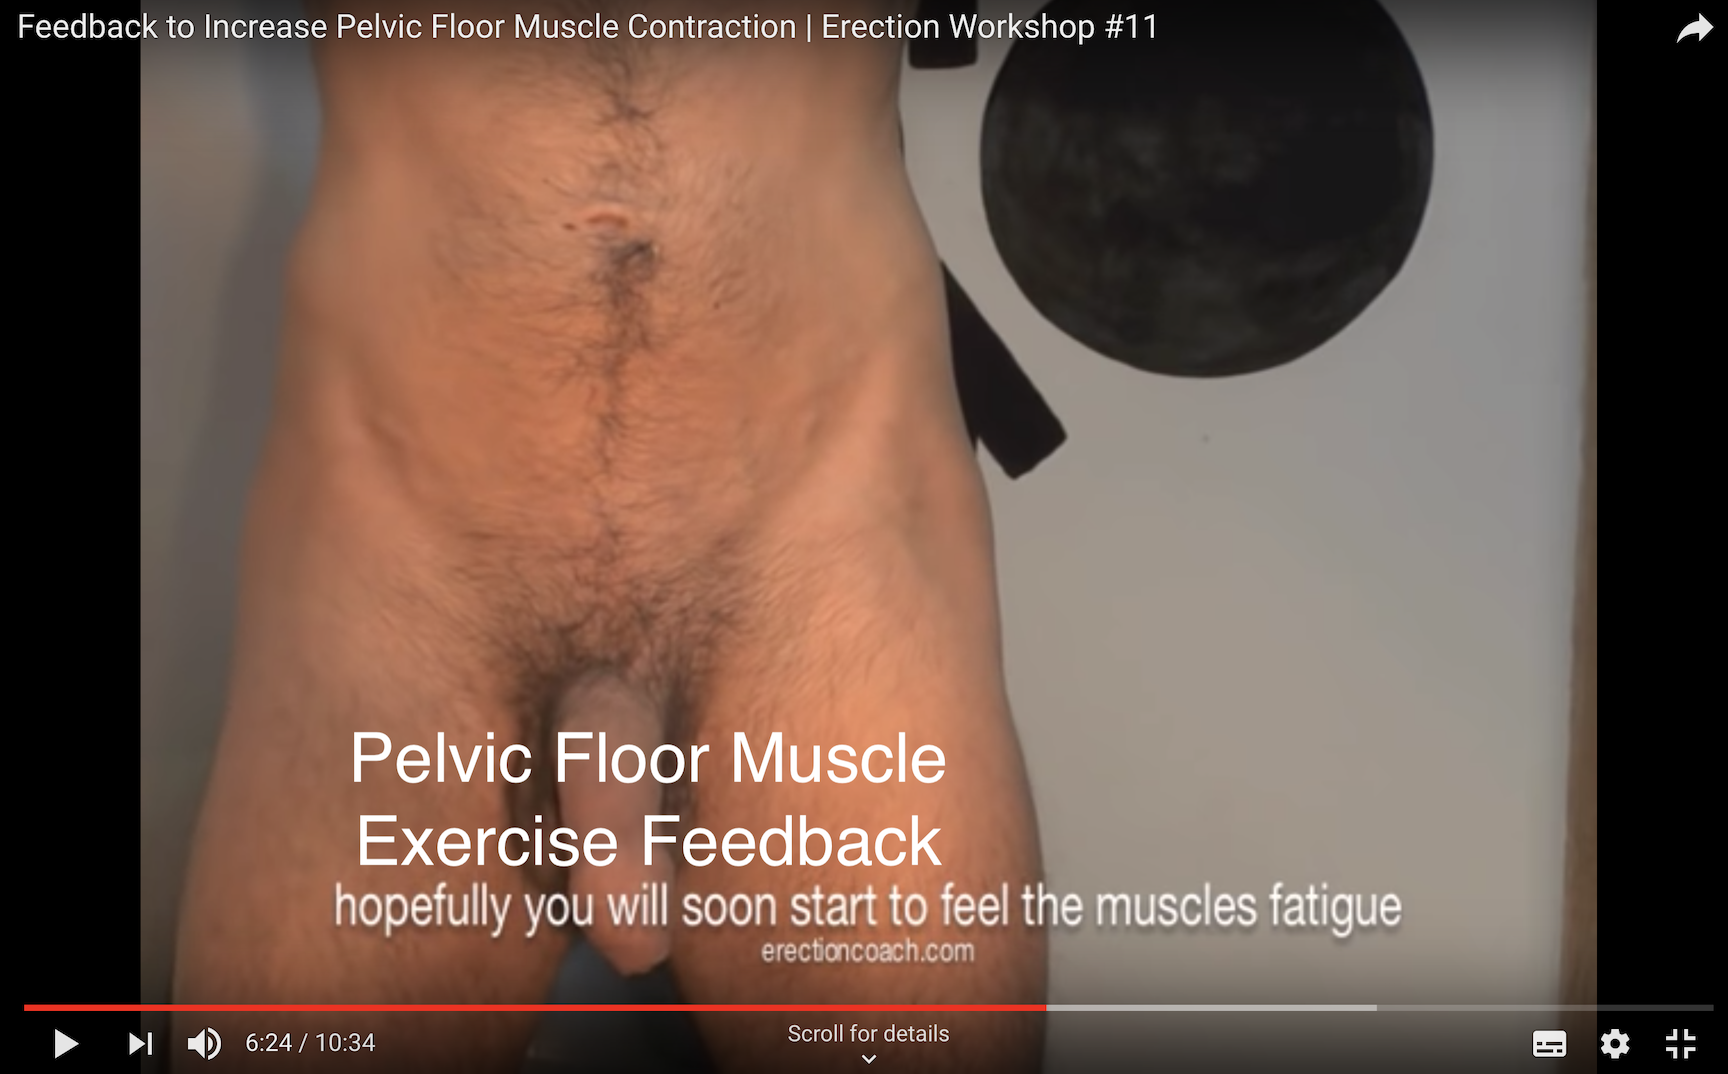 naked trainer showing base of penis movement as a result of pelvic floor exercise